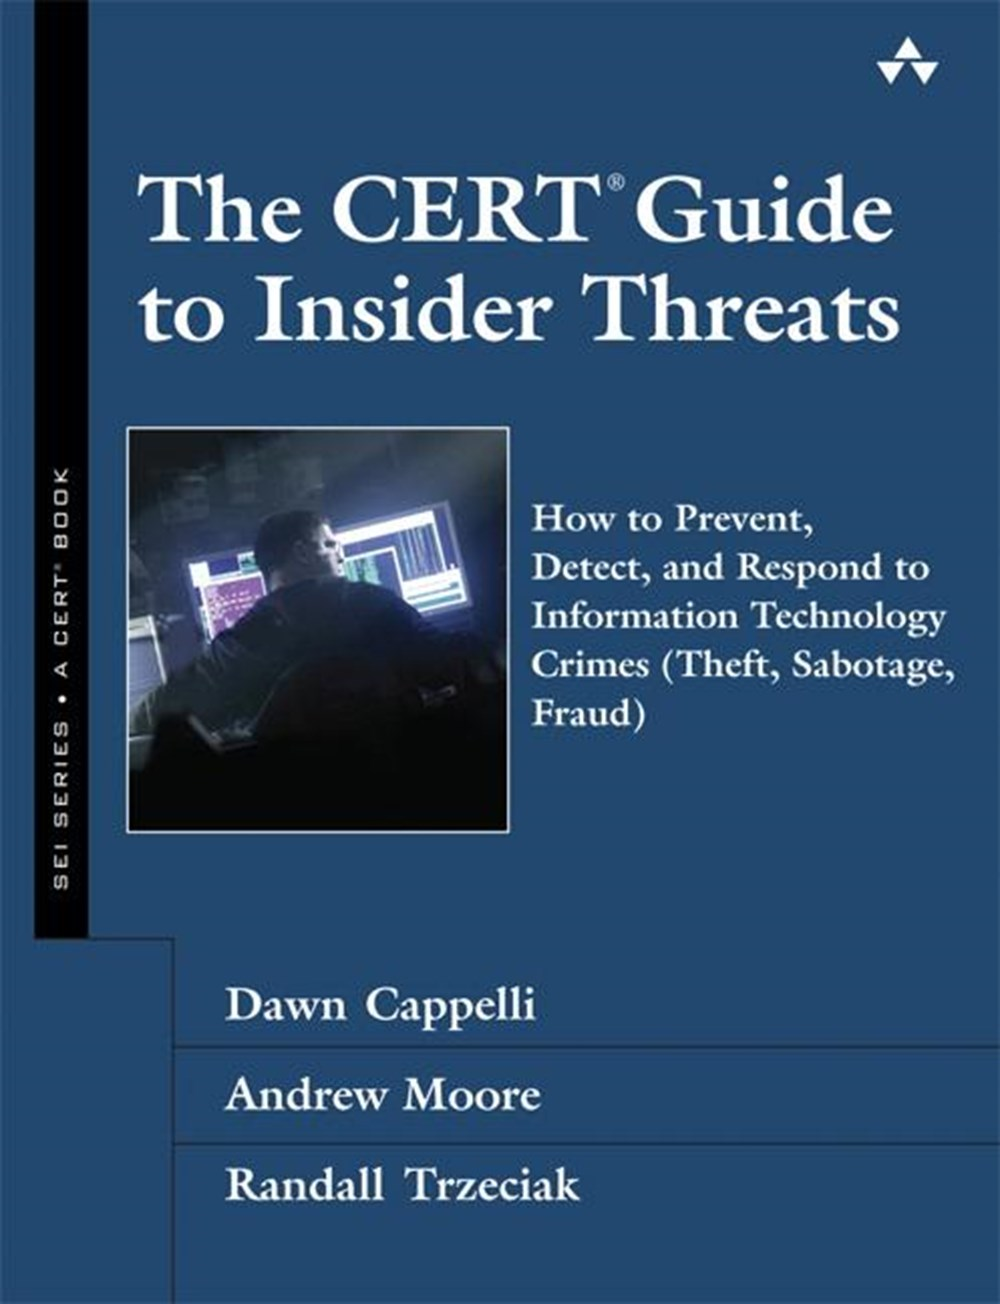 CERT Guide to Insider Threats How to Prevent, Detect, and Respond to Information Technology Crimes (